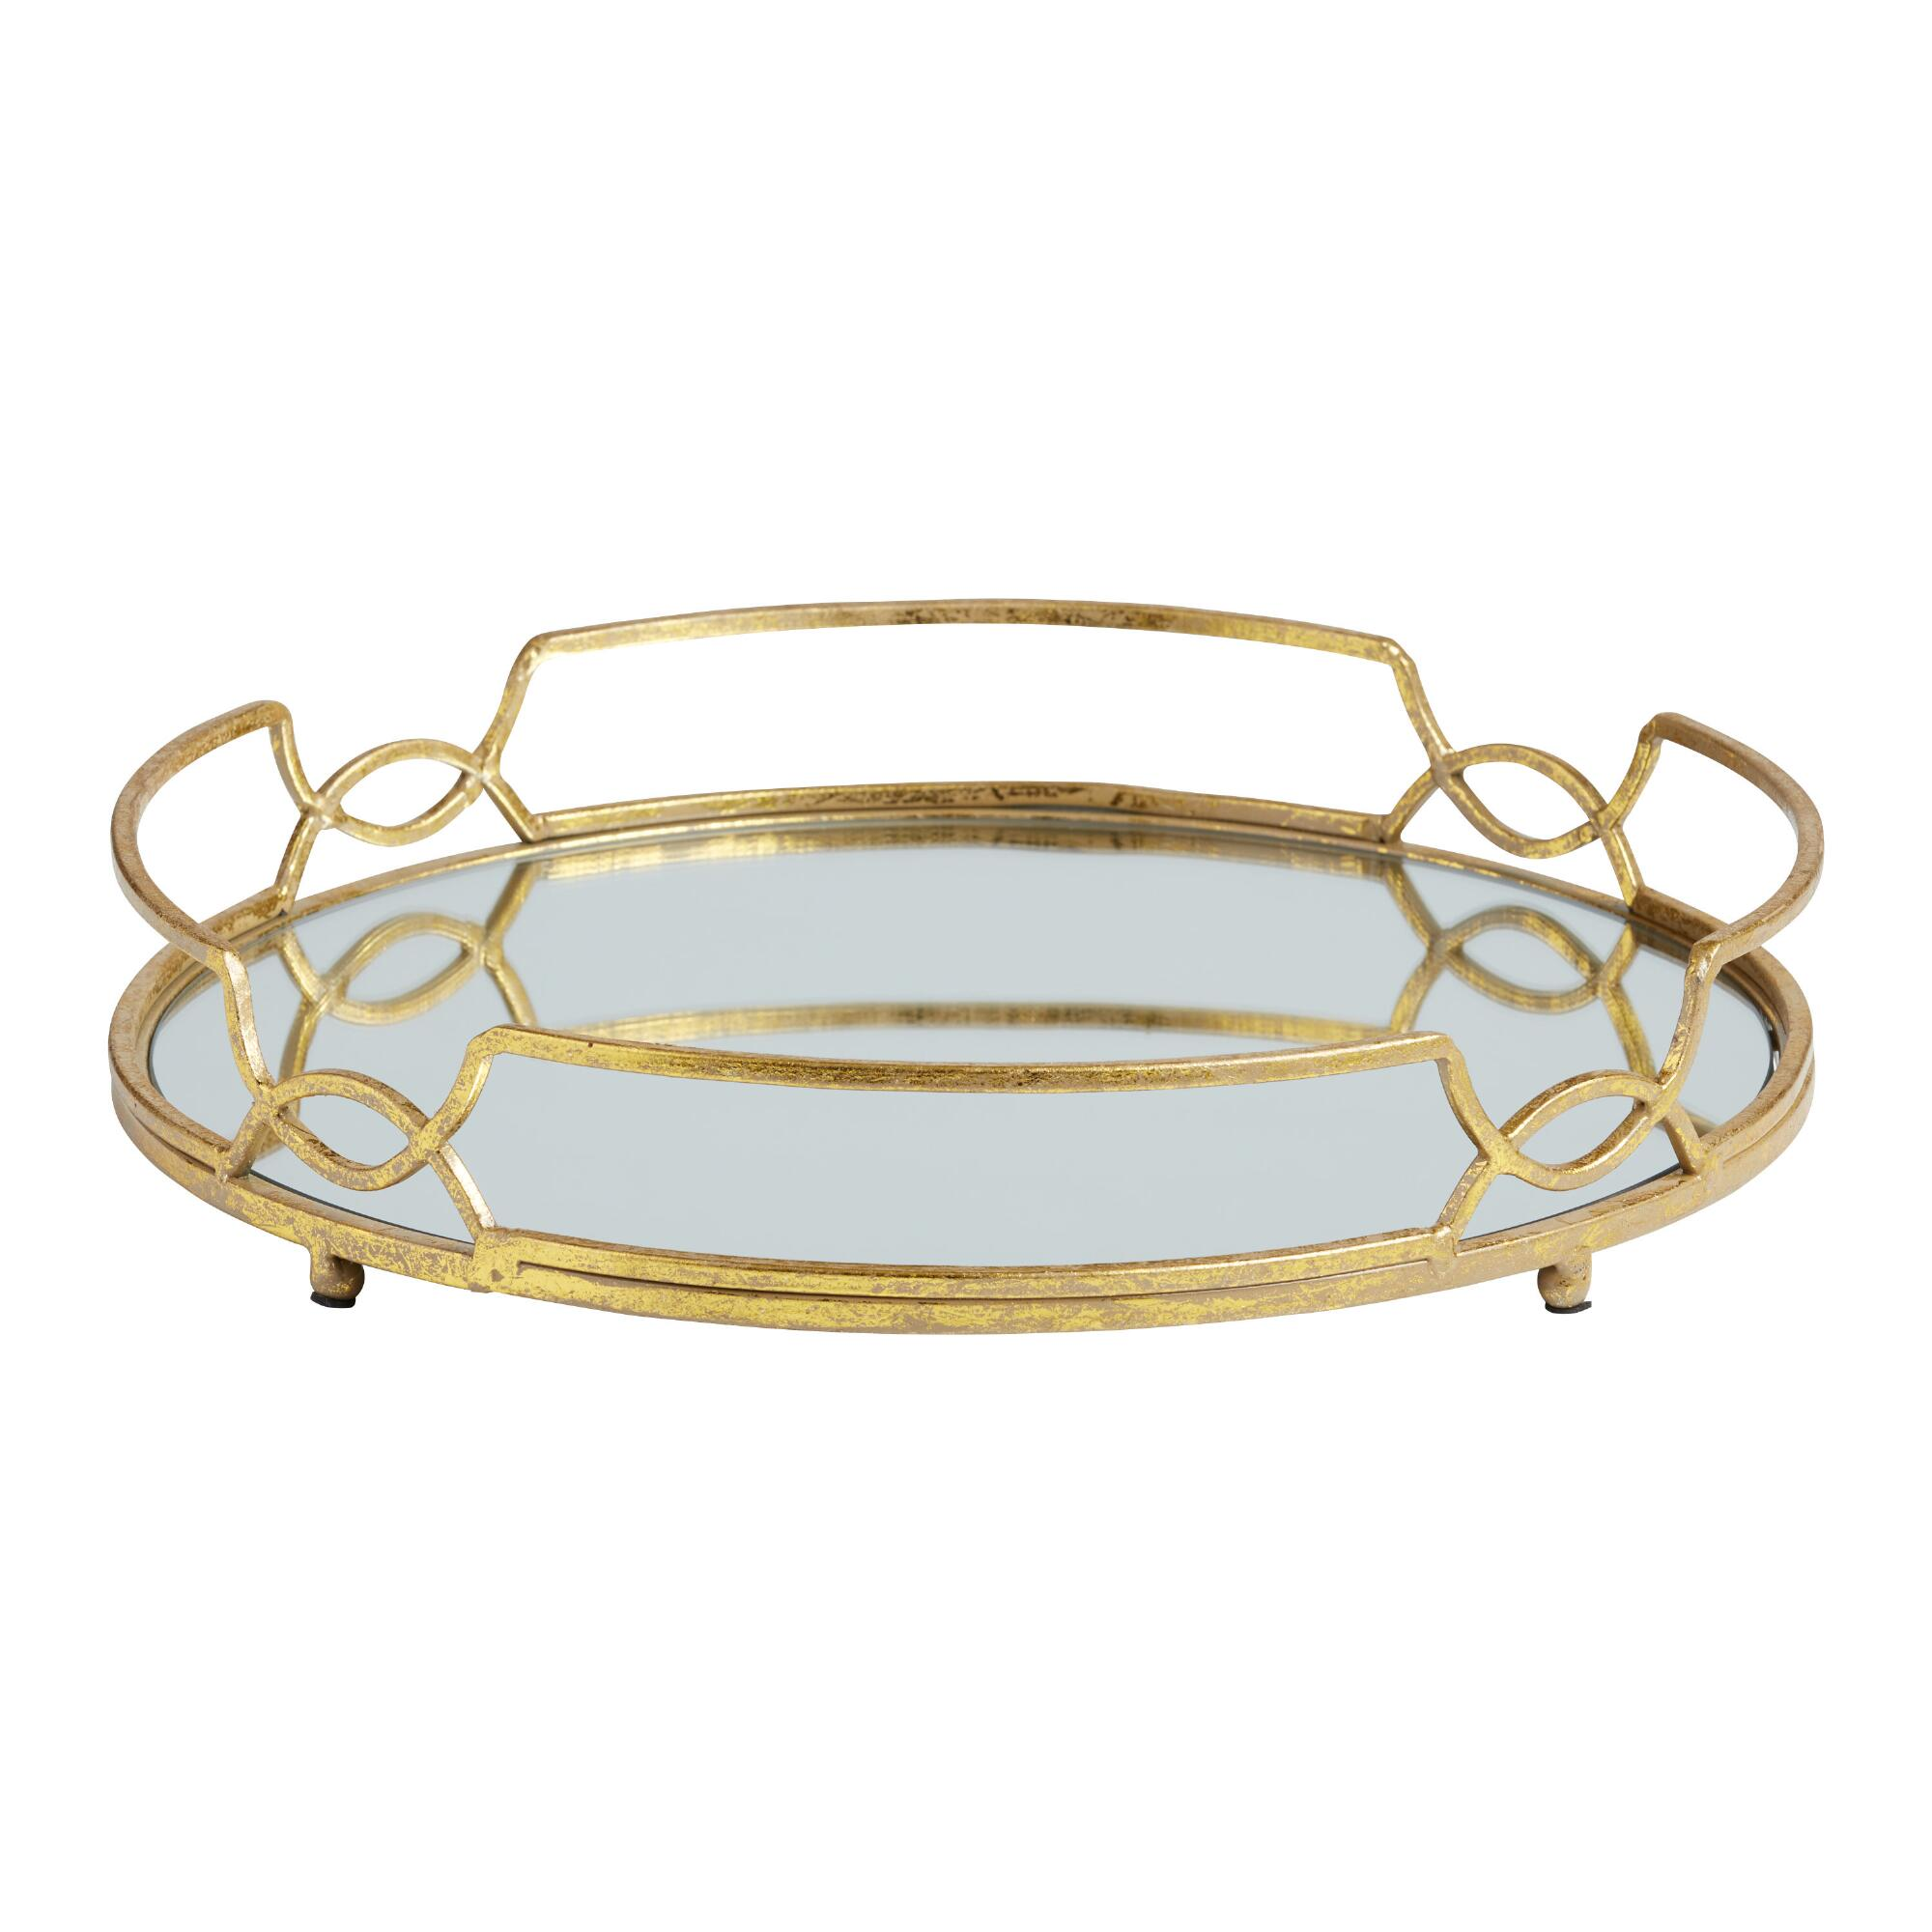 Gold Mirrored Tabletop Tray from Cost Plus World Market